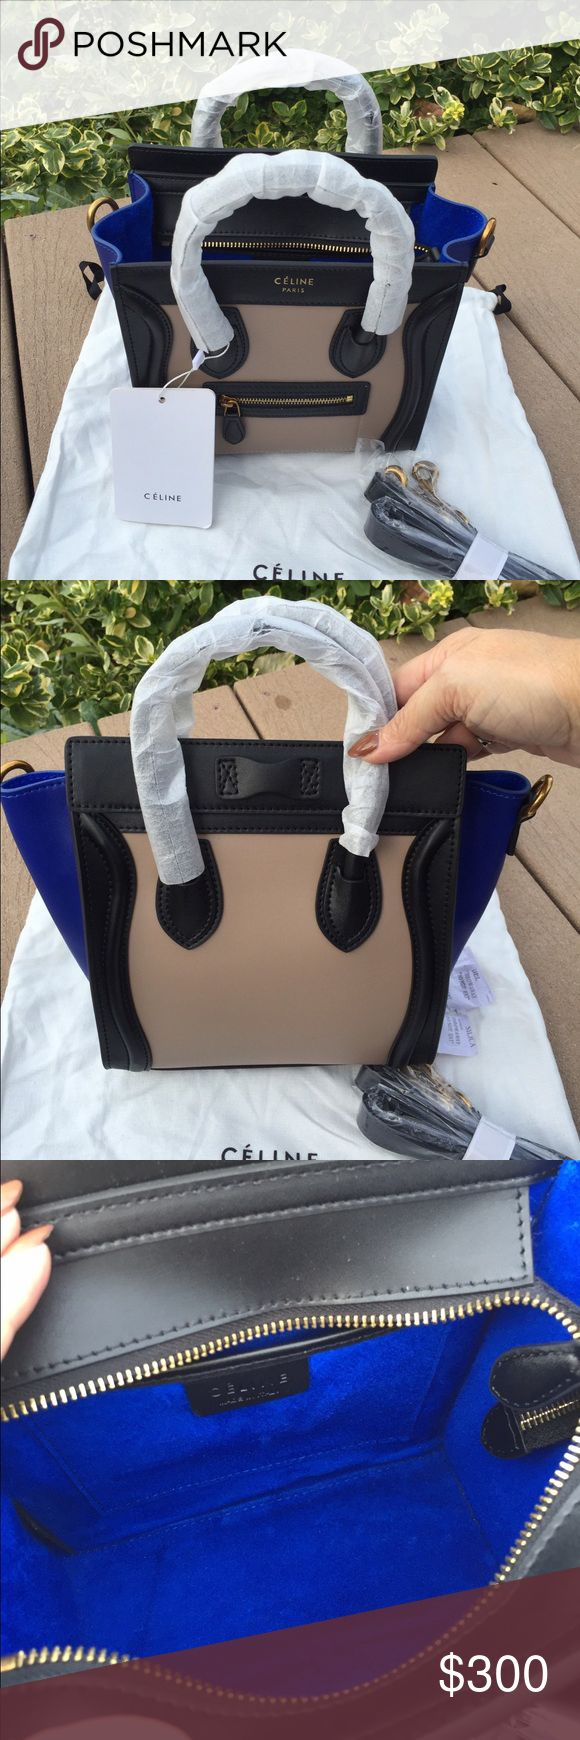 Celine Nano bag with strap New Celine Nano bag with strap and dustbag, blue/black/tan combo, absolutely stunning!! Bags Mini Bags